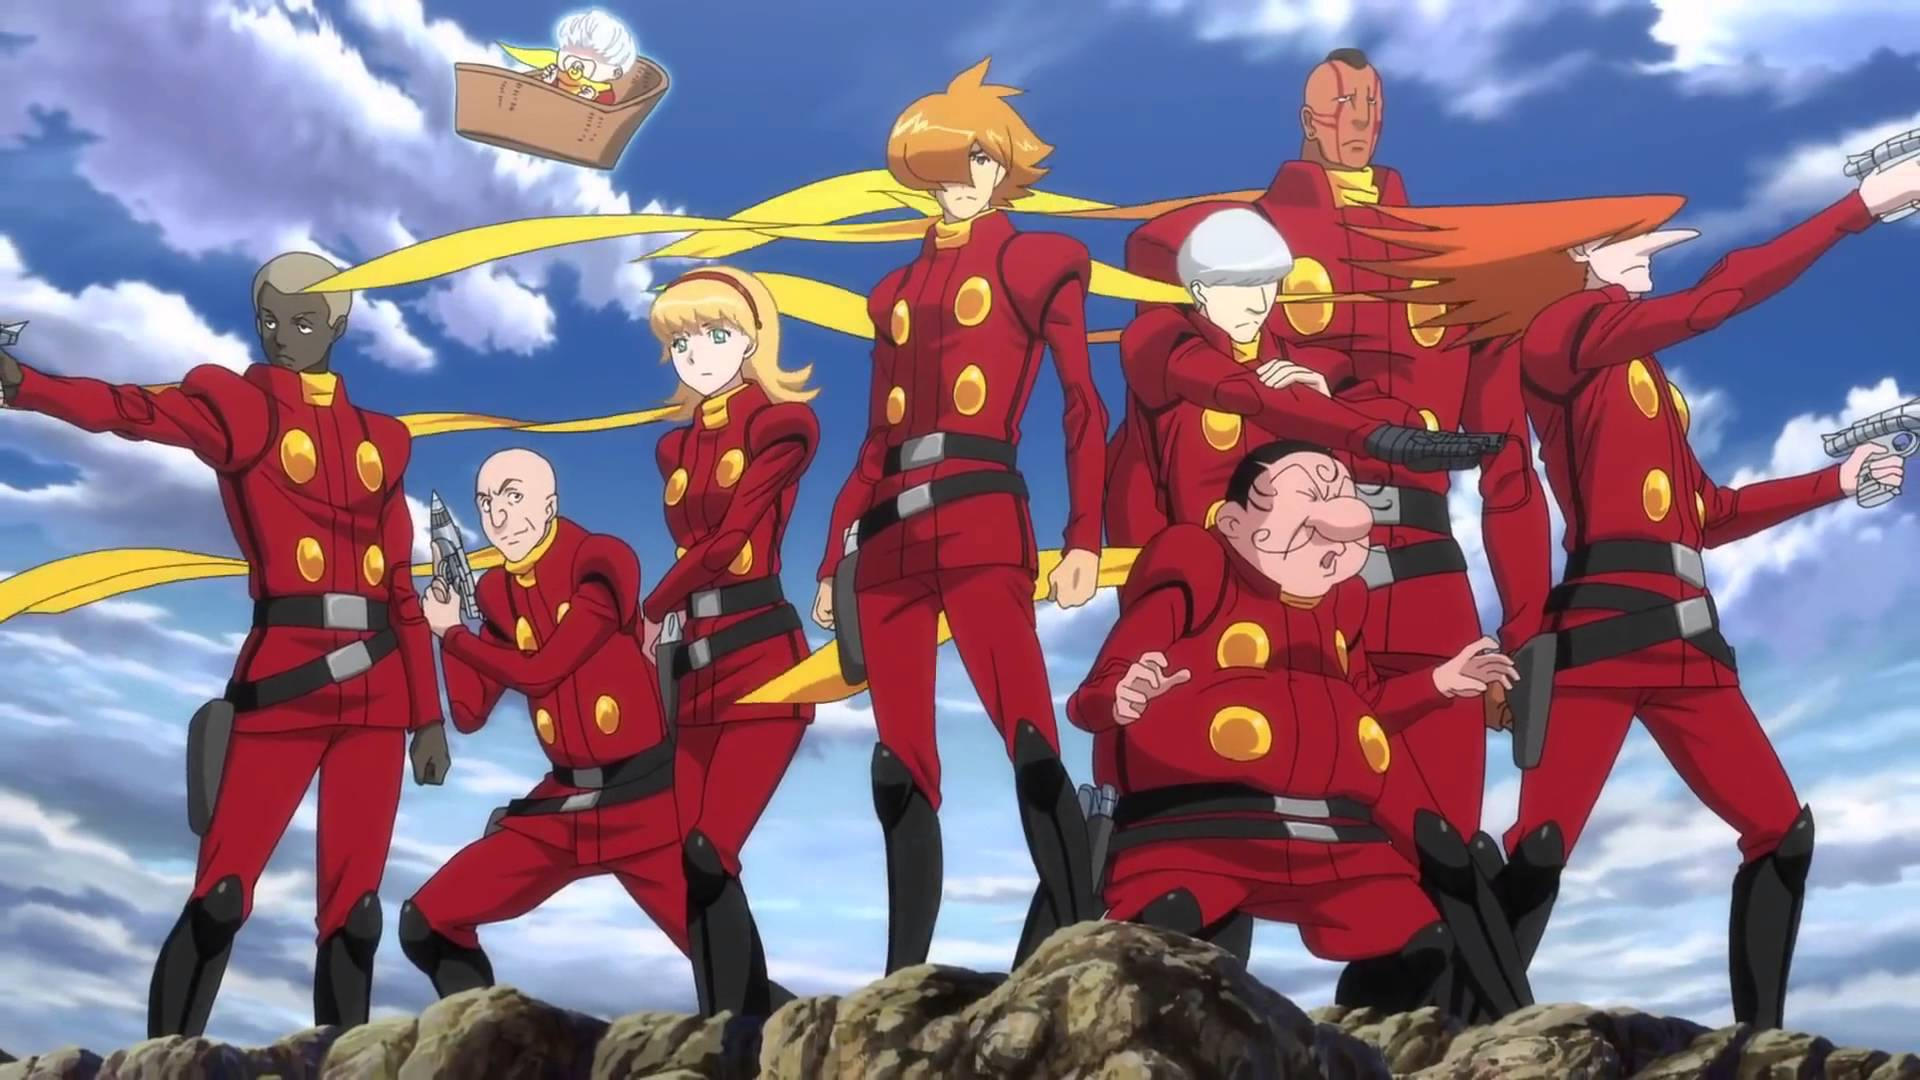 The cast of Cyborg 009